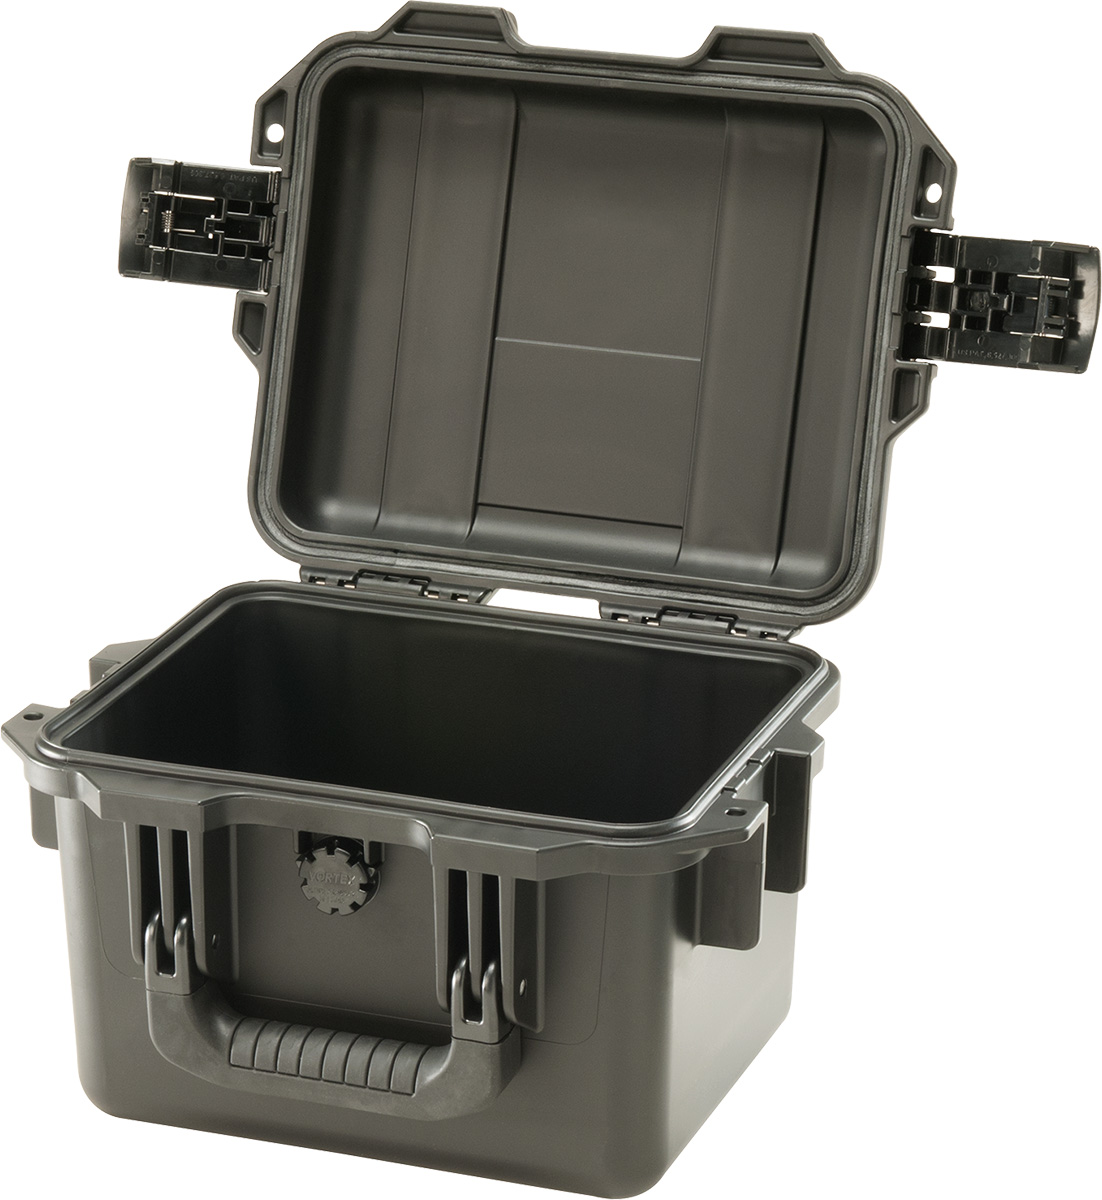 pelican im2075 pelican im2075 waterproof camera hard case